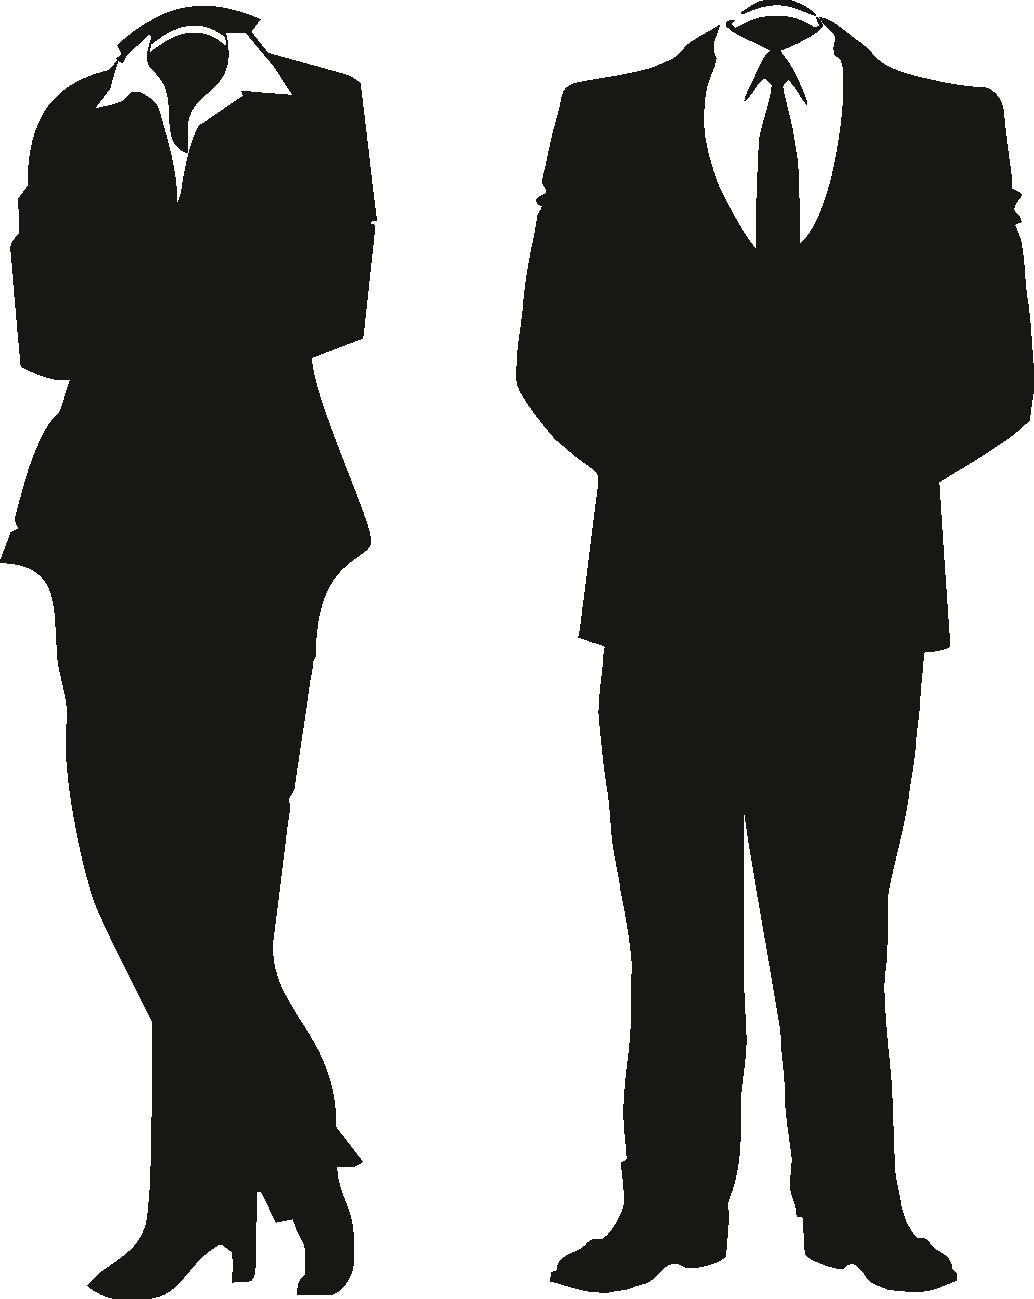 1034x1299 James Bond Film Series Silhouette Clip Art Png Download Pleasing